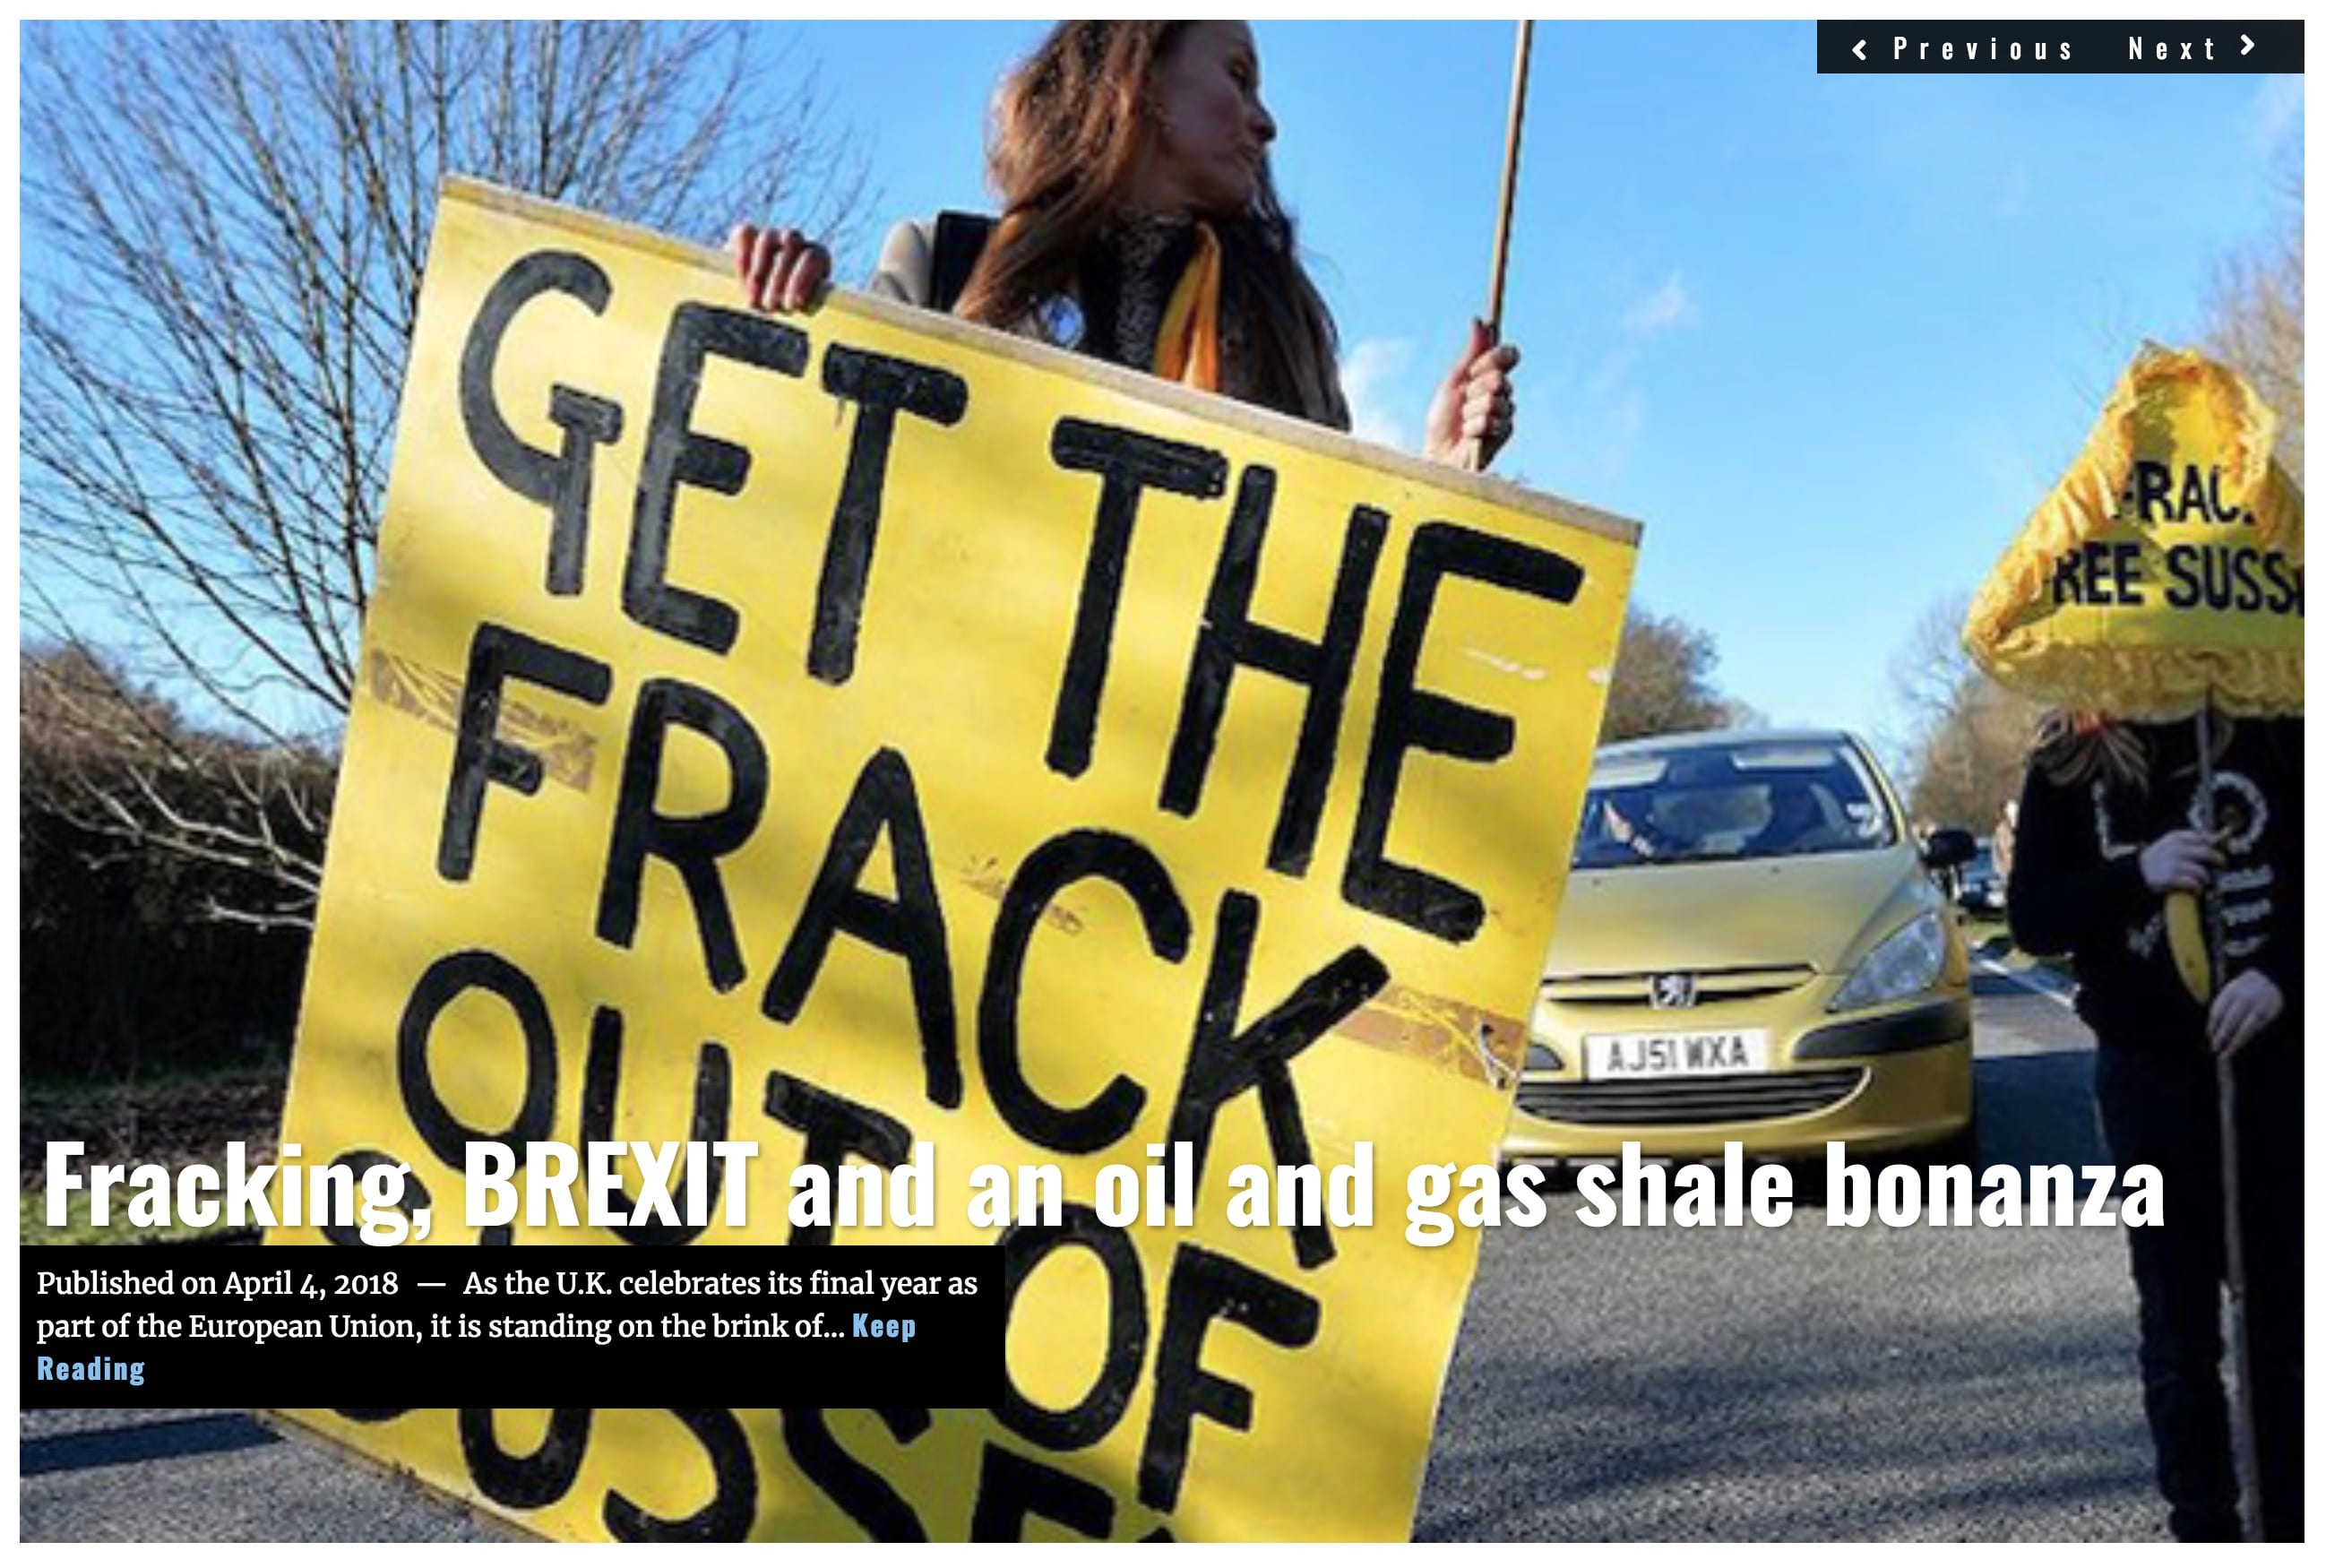 Image Lima Charlie News Headline Fracking BREXIT APRIL 4 2018